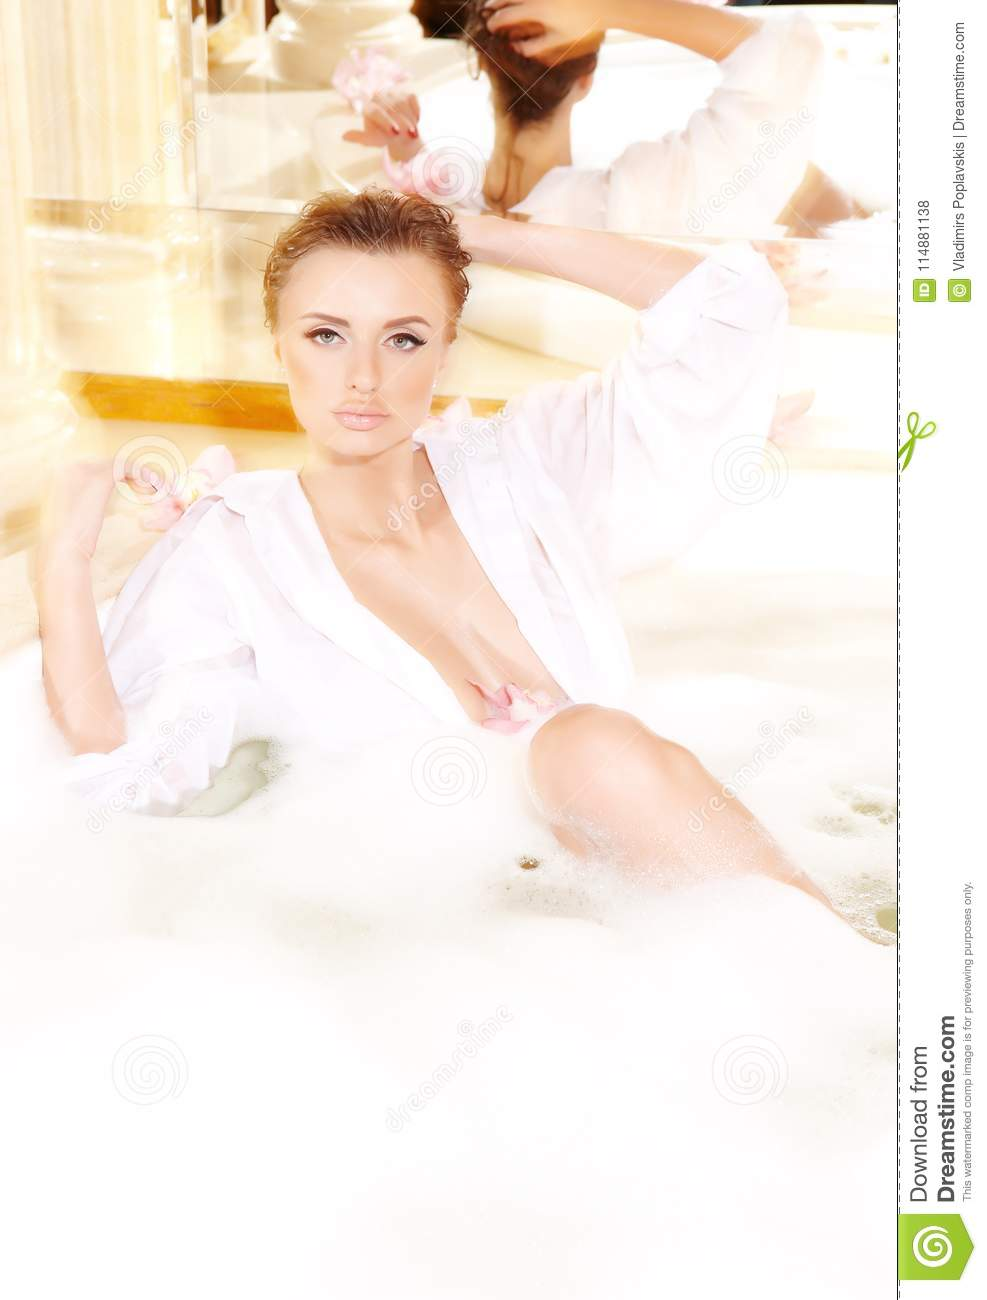 Wet Blond Woman In A White Dressing Gown. Stock Photo - Image of ...